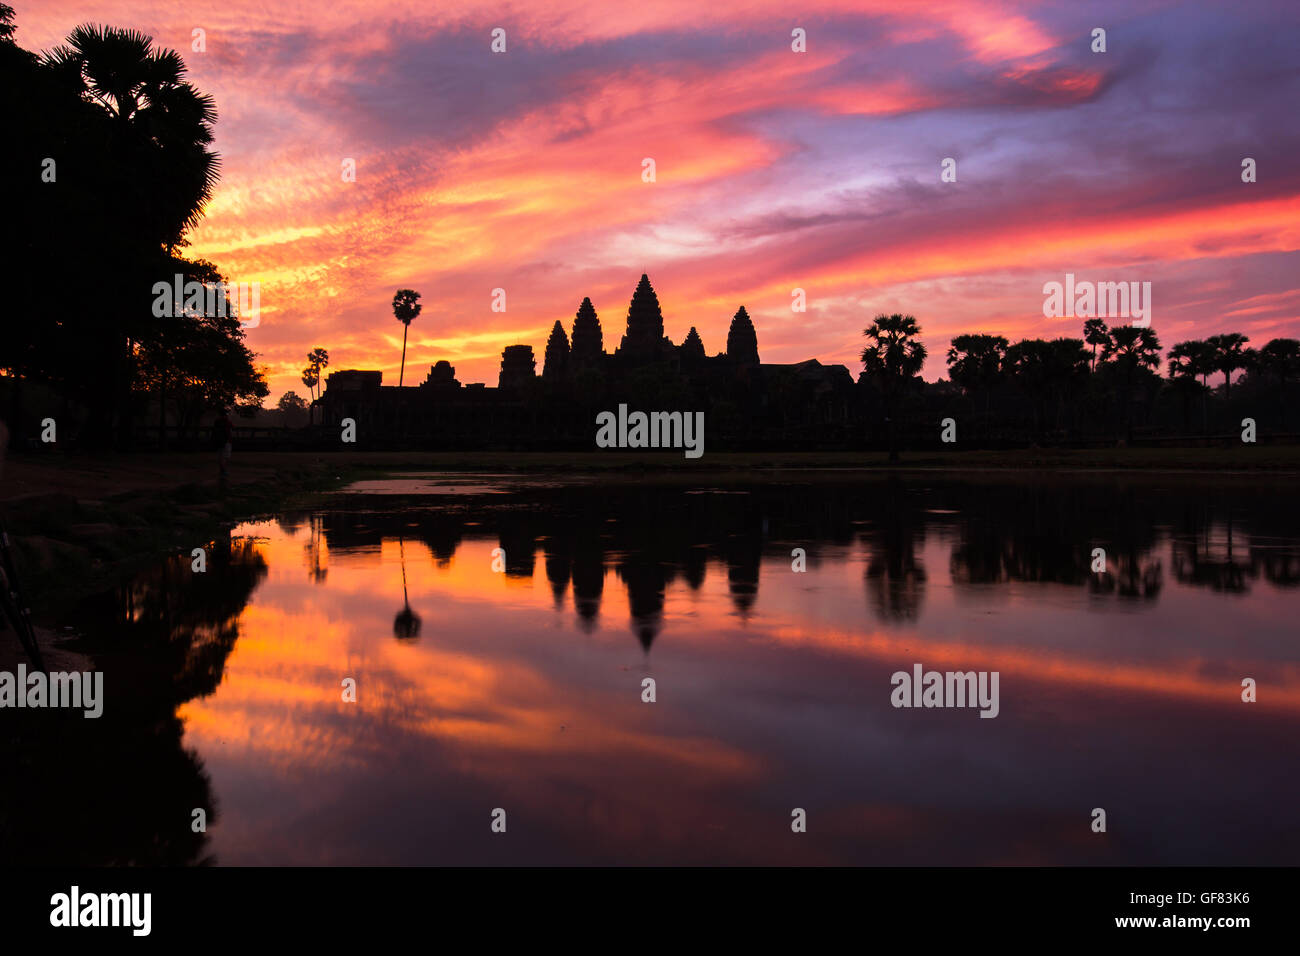 Angkor Wat temple at dramatic sunrise reflecting in water - Stock Image